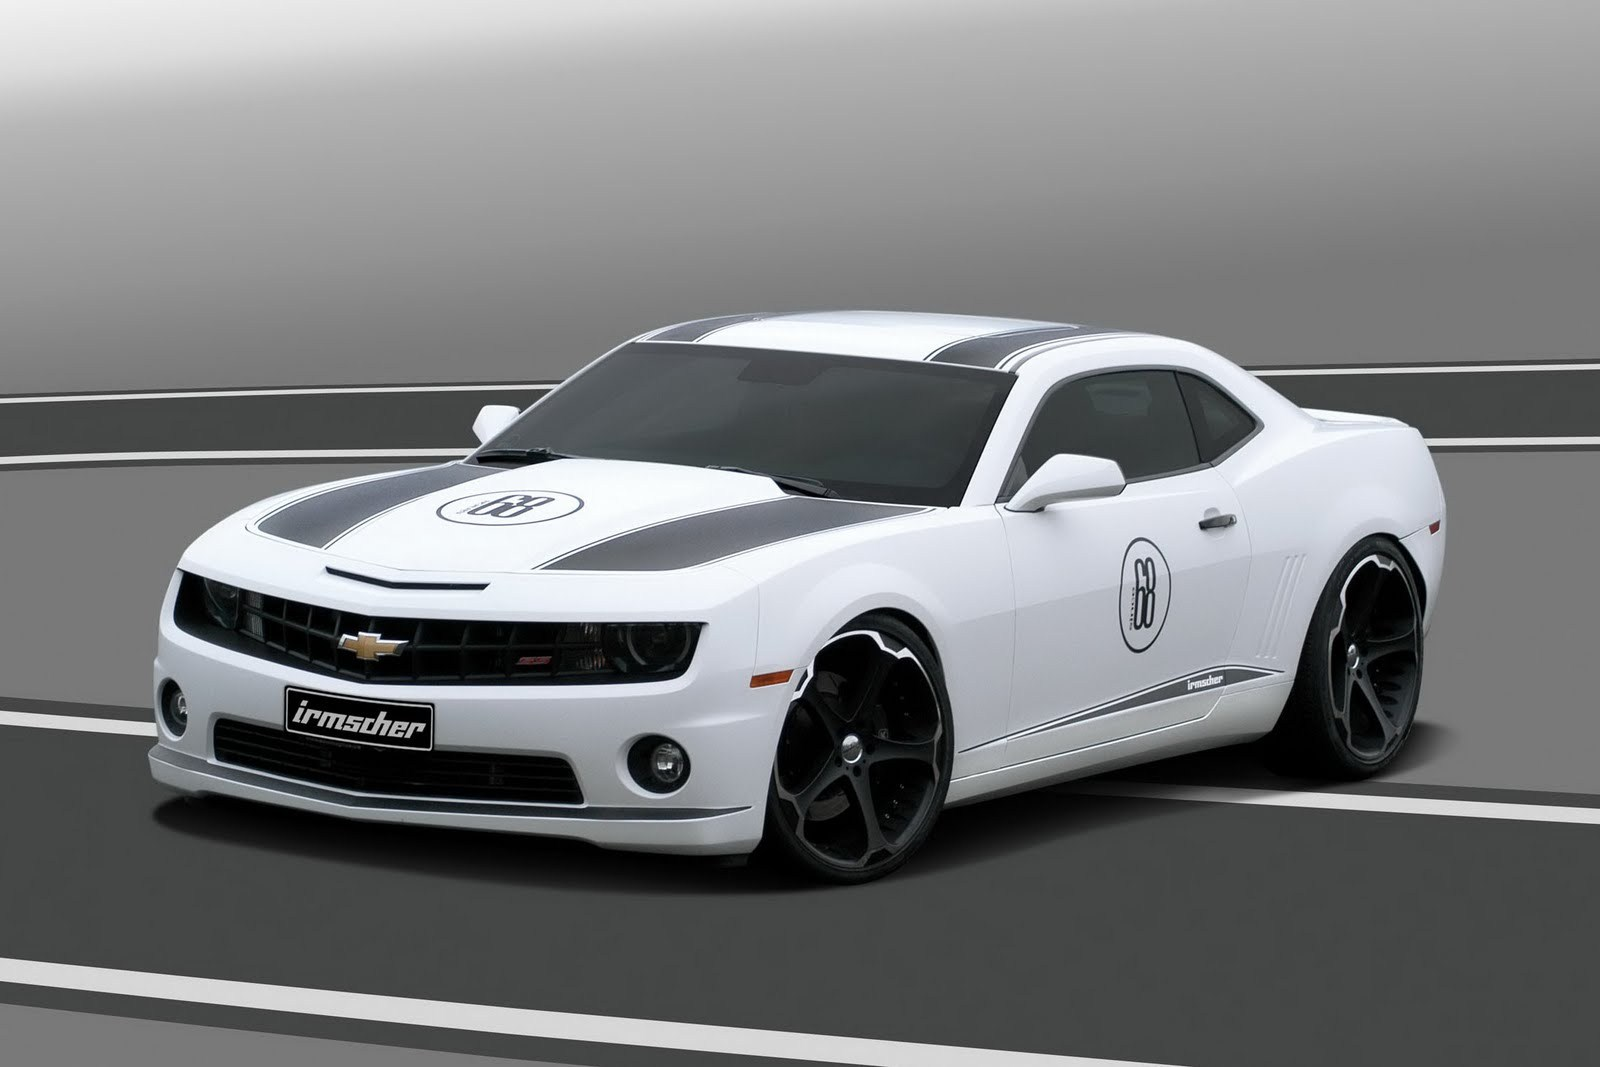 2016 Chevrolet Camaro - Viewing Gallery